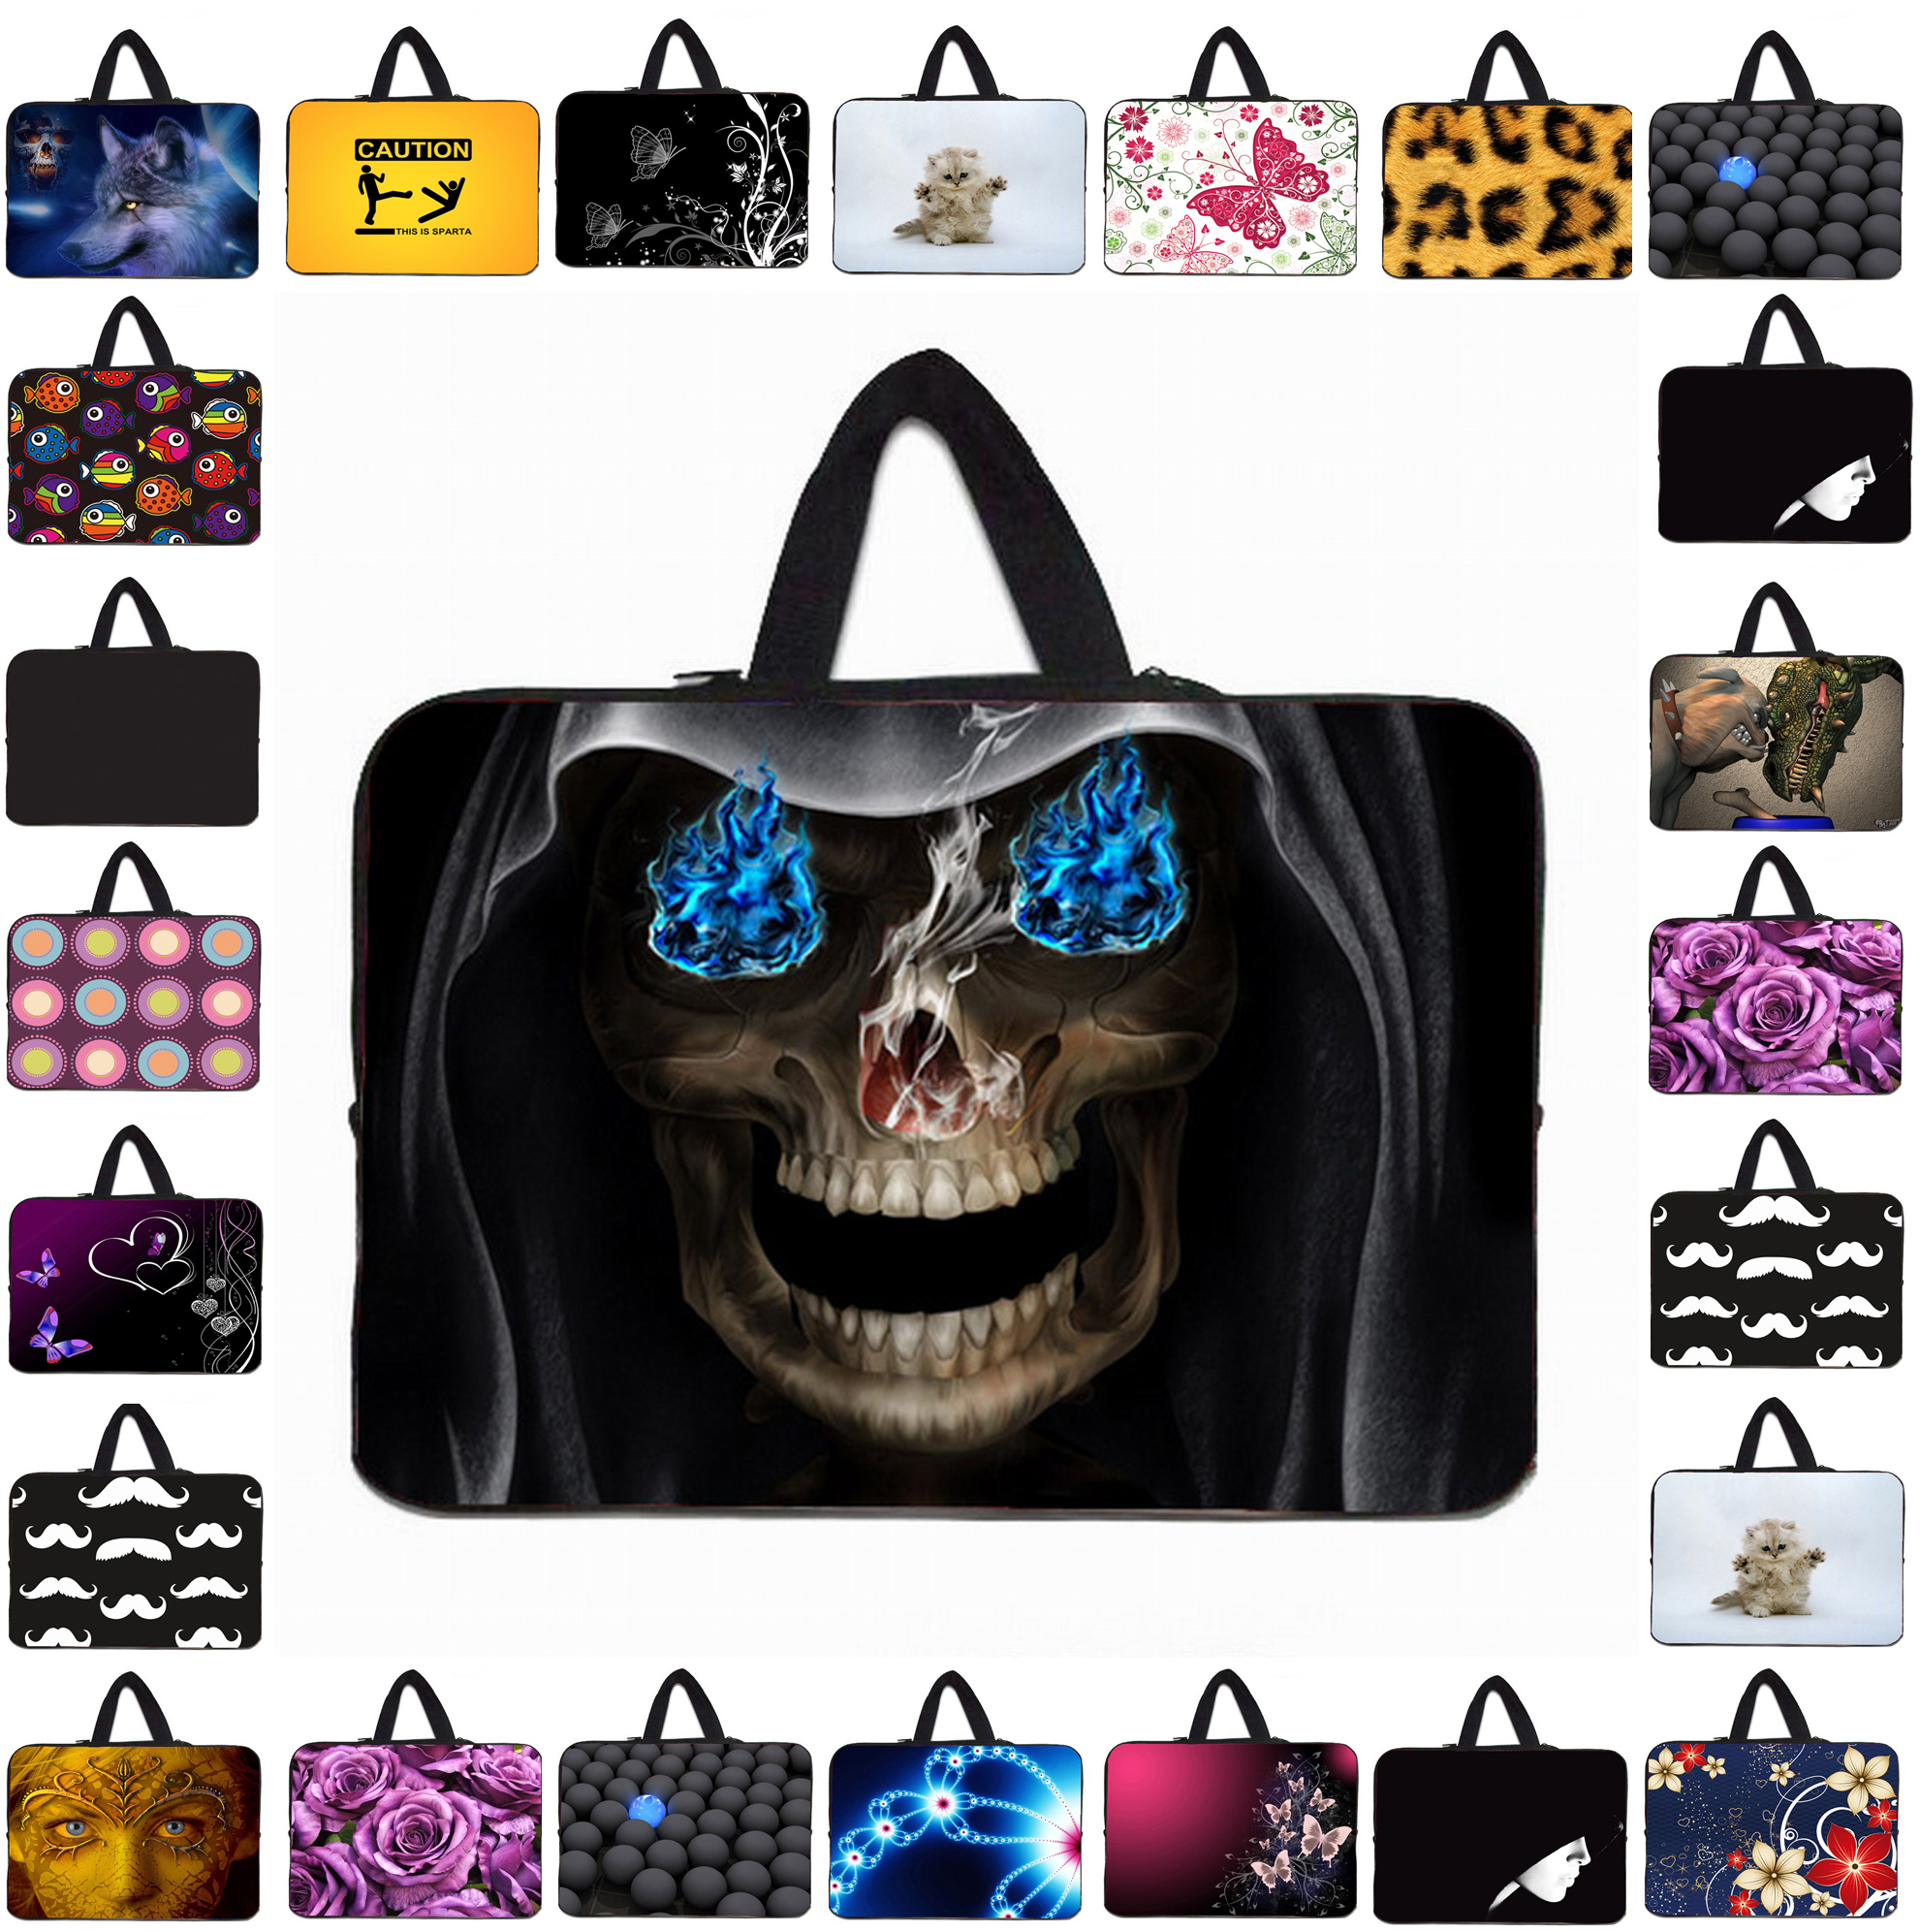 """Many Design 14"""" 14.1"""" 14.4"""" Neoprene Laptop Sleeve Bags Case For Lenovo HP Acer 14"""" Dell 14z Ultrabook Retail Notebook Pouch Bag(China (Mainland))"""